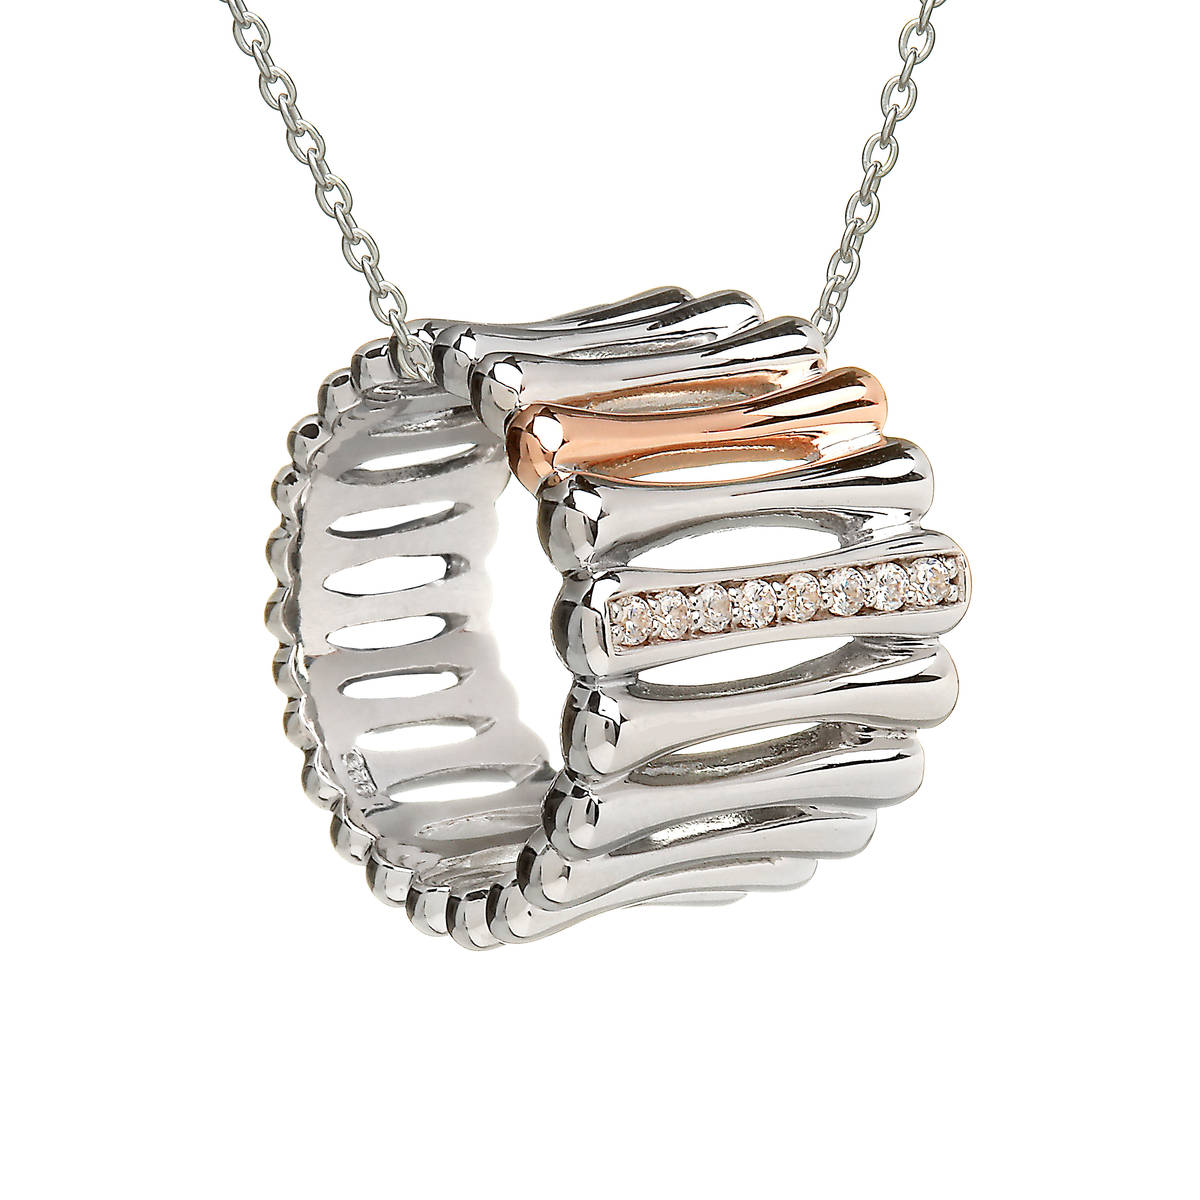 House of Lor Silver pendant.  One bar of cubic zirconia, and one bar made from Rare Irish rose gold.